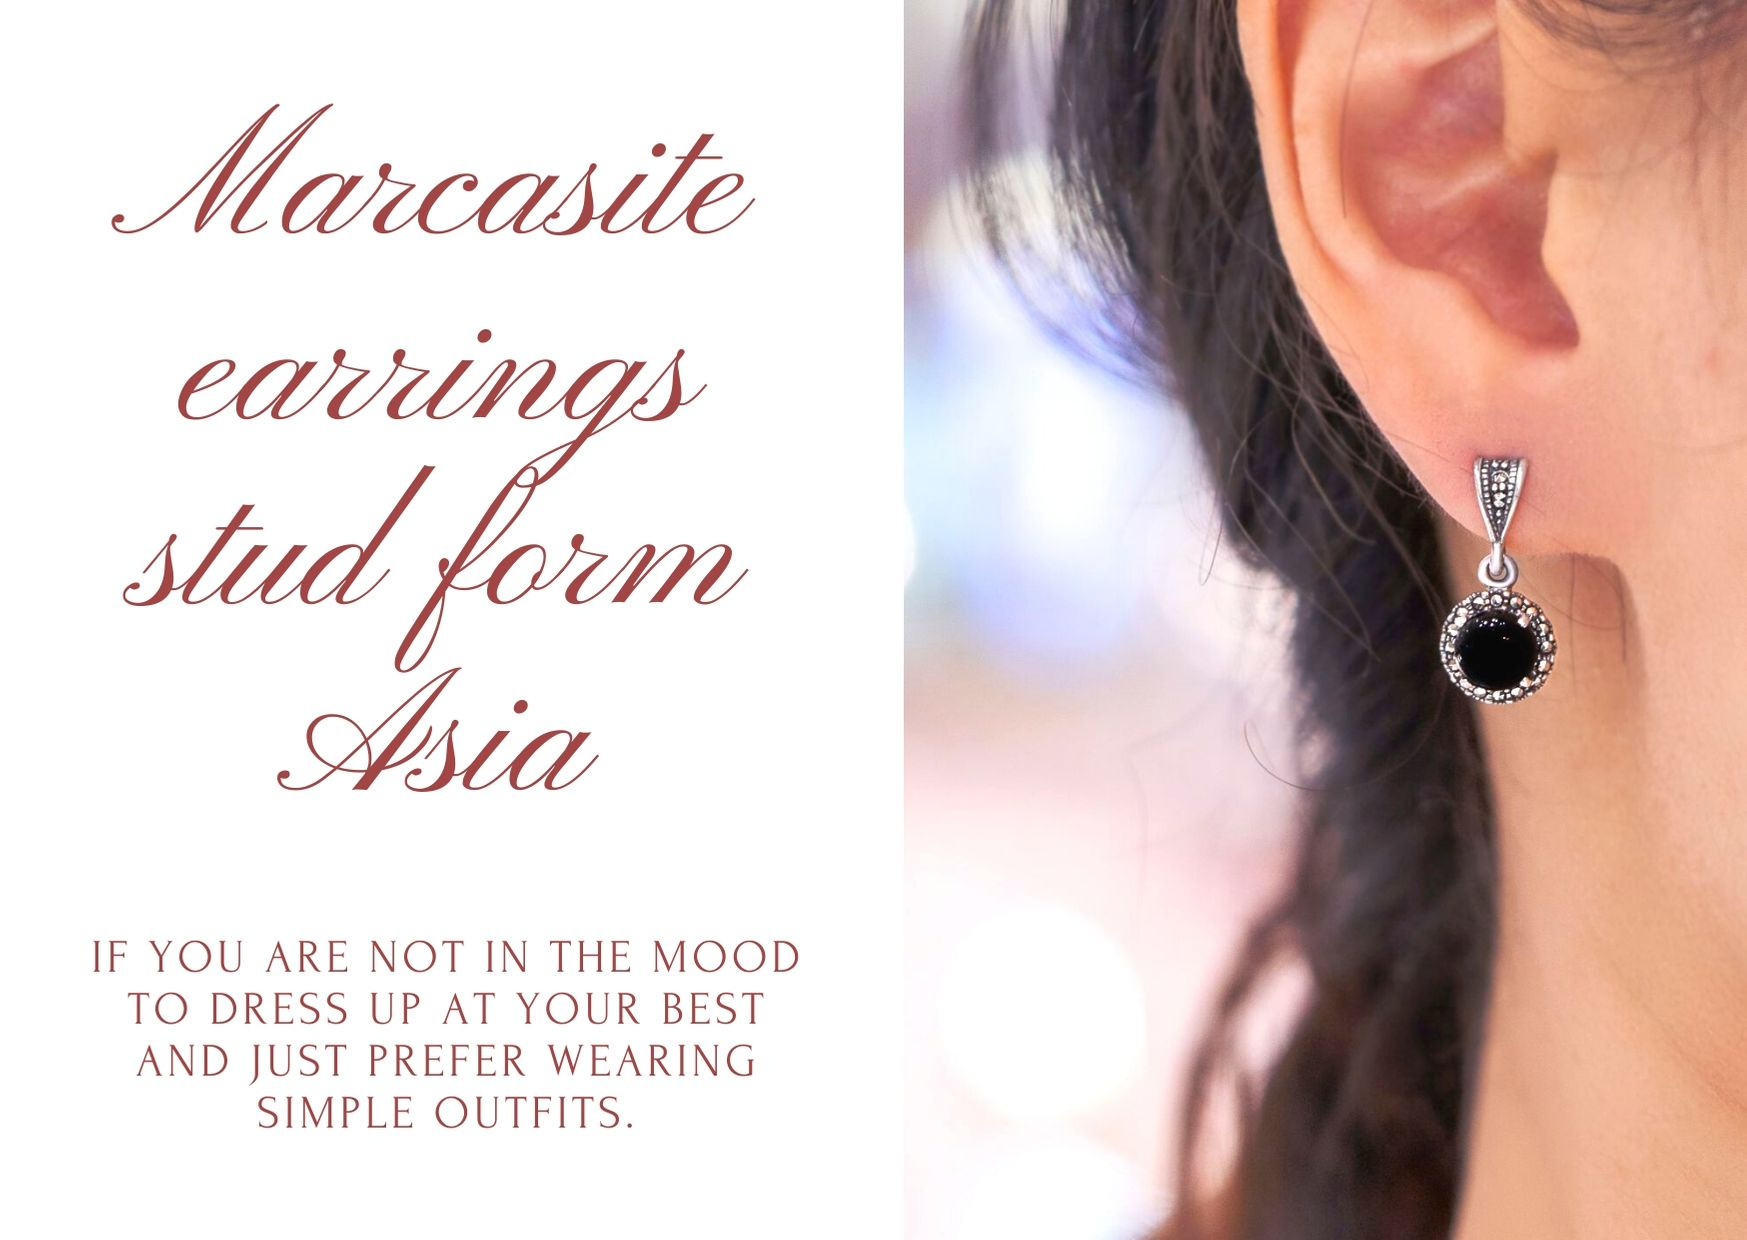 The Marcasite Earrings They go well with any type of look that you style.